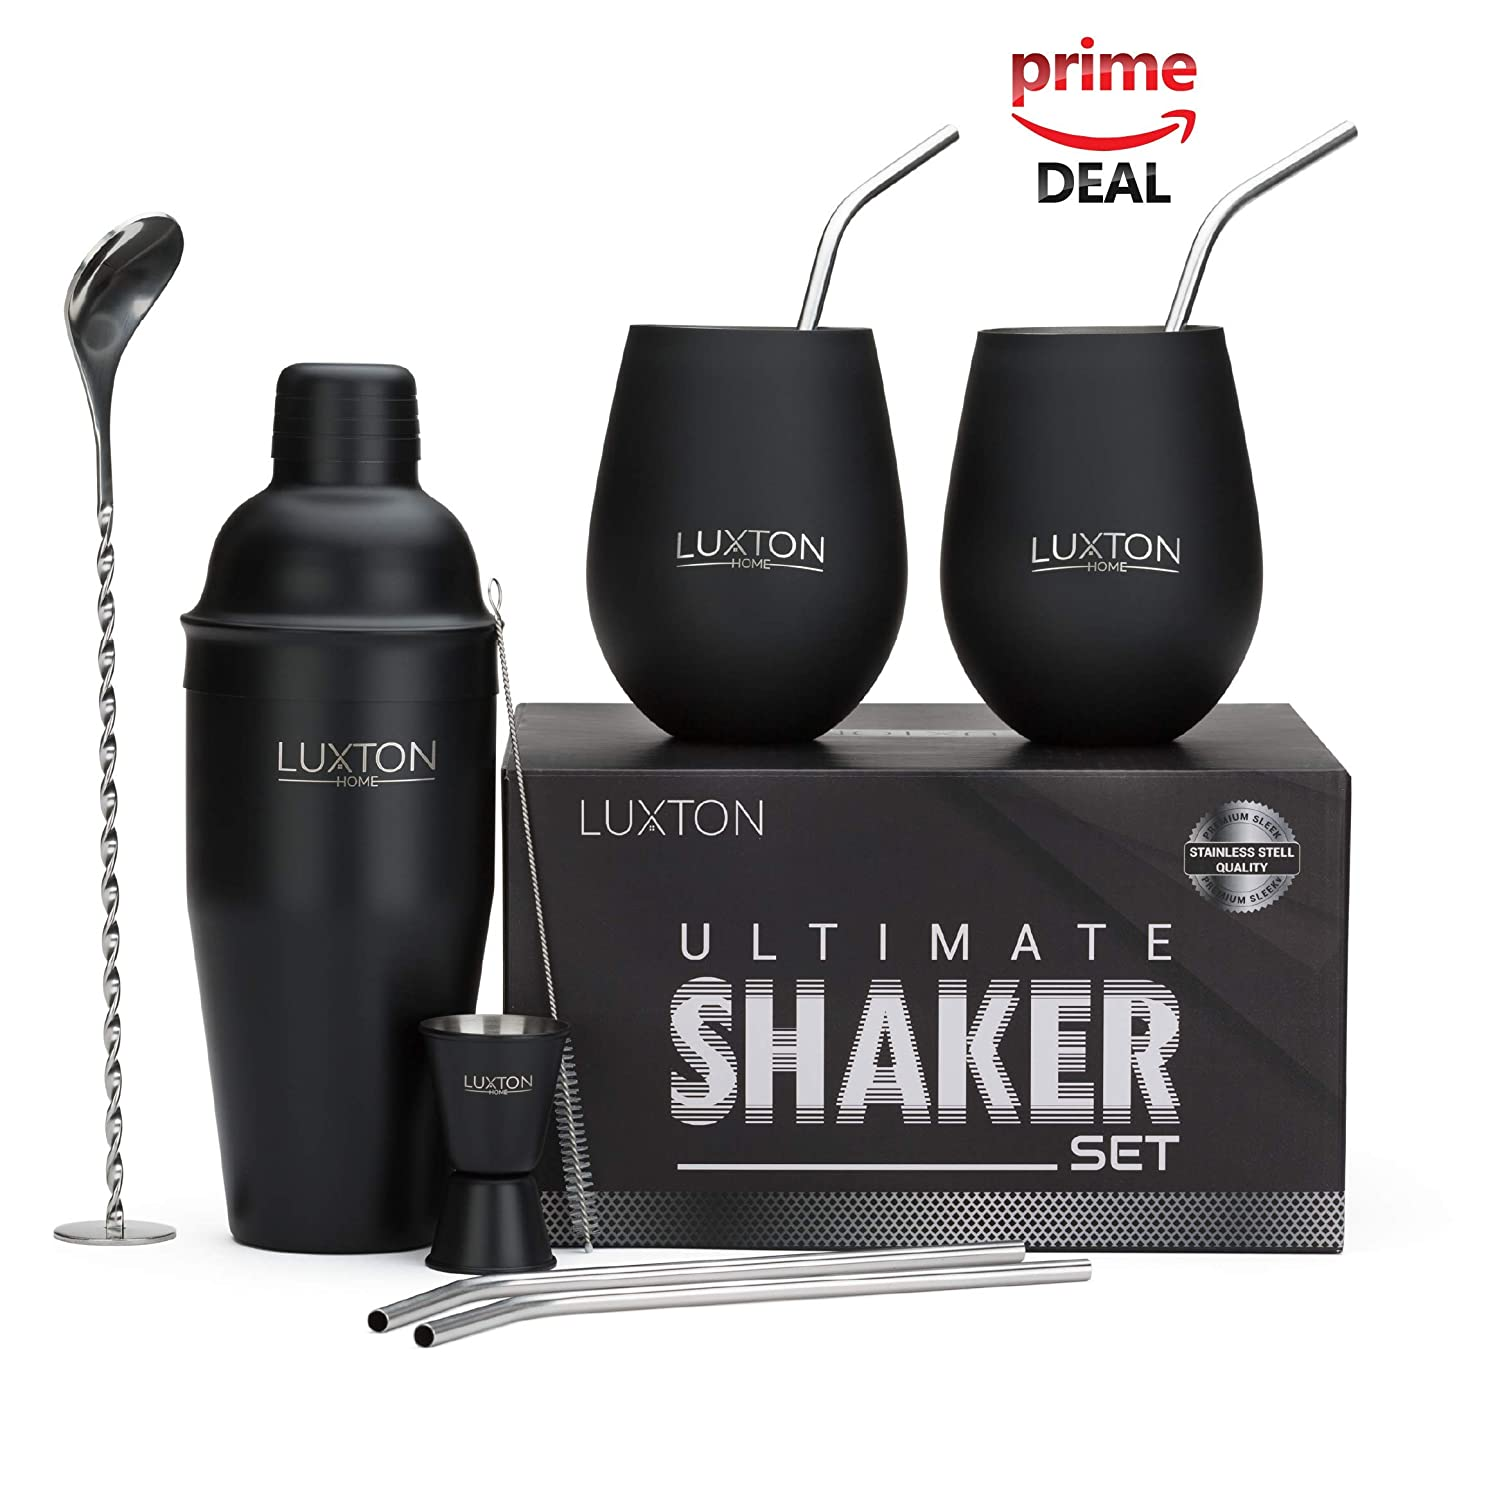 Luxton Home Ultimate Cocktail Shaker Set Matte Black - Plus 2 Cups & 4 Straws